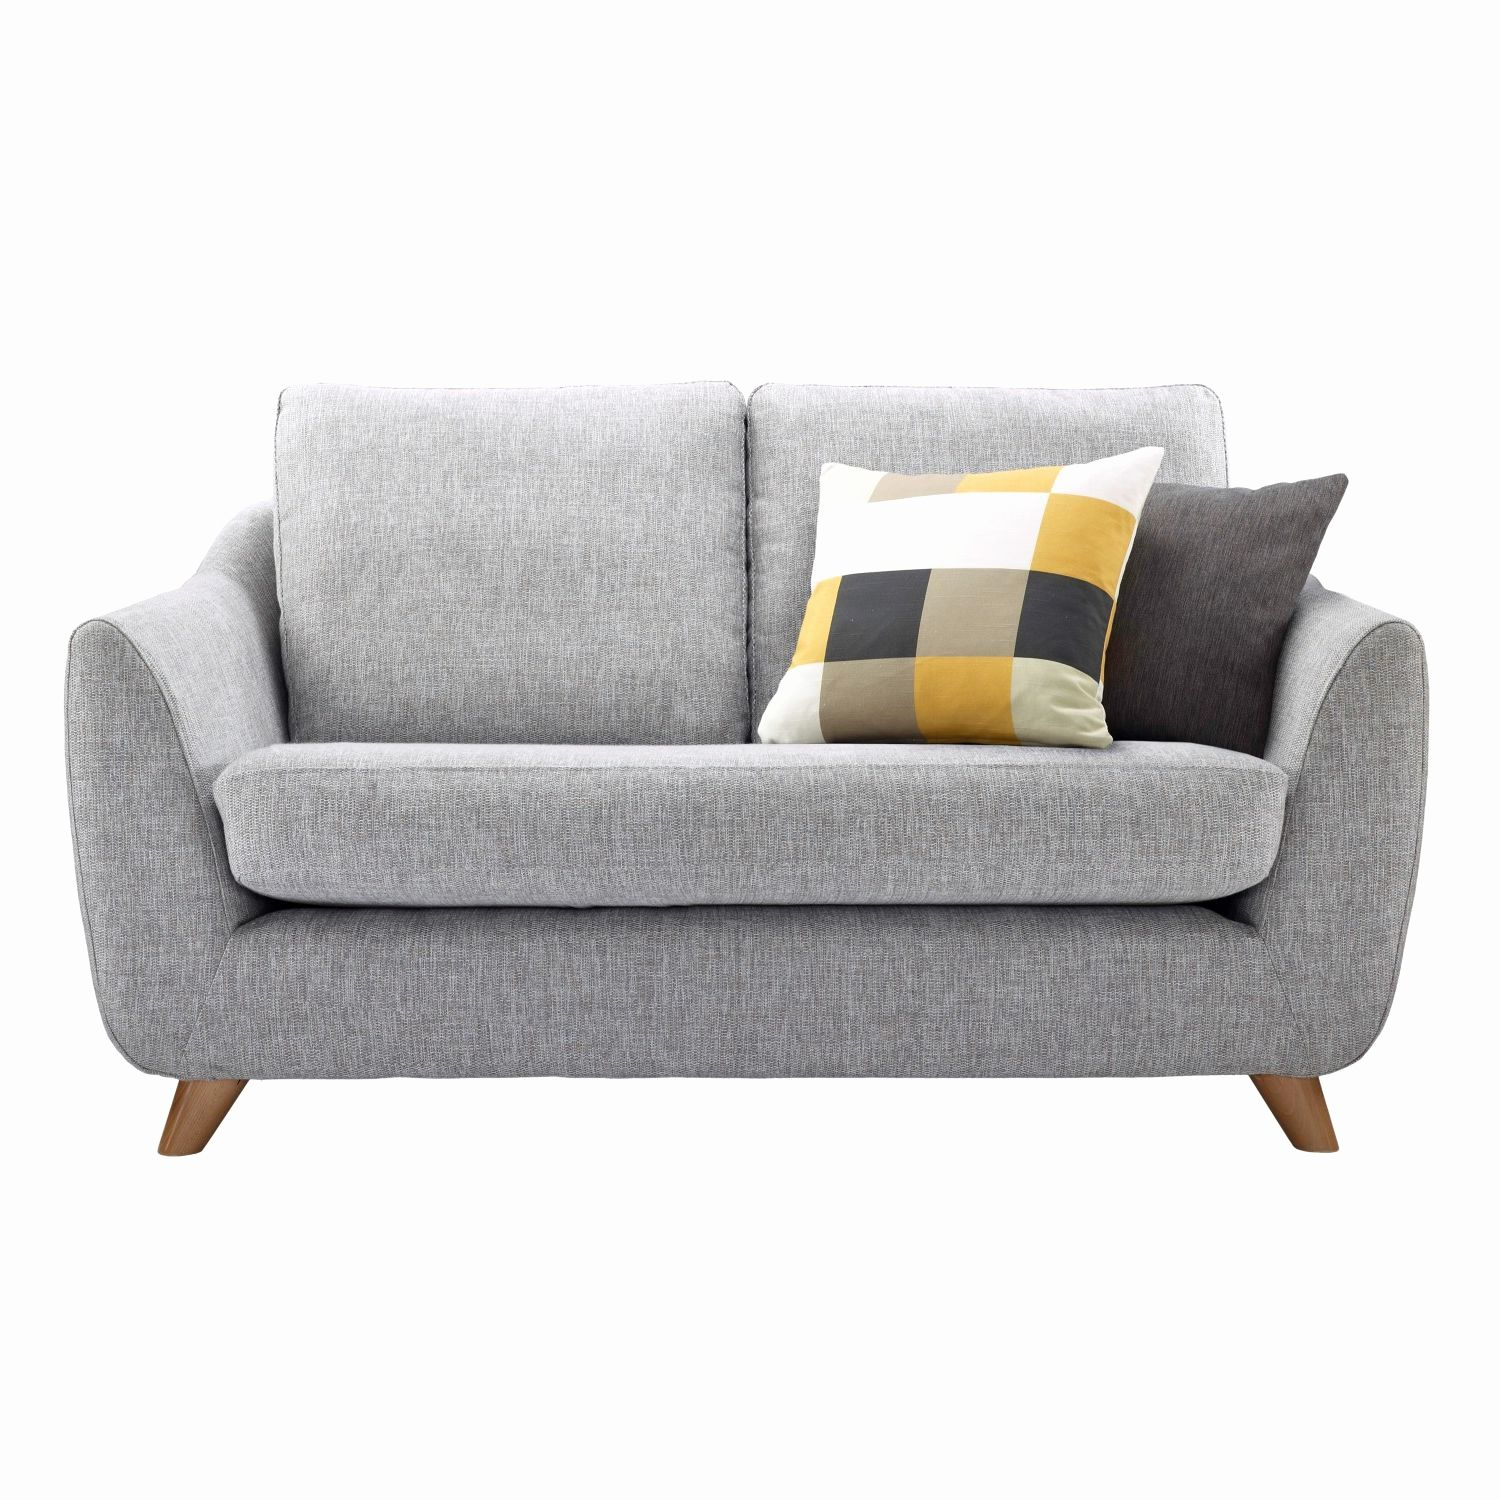 Best Of Modern Office Sofa Designs Pictures Modern Office Sofa